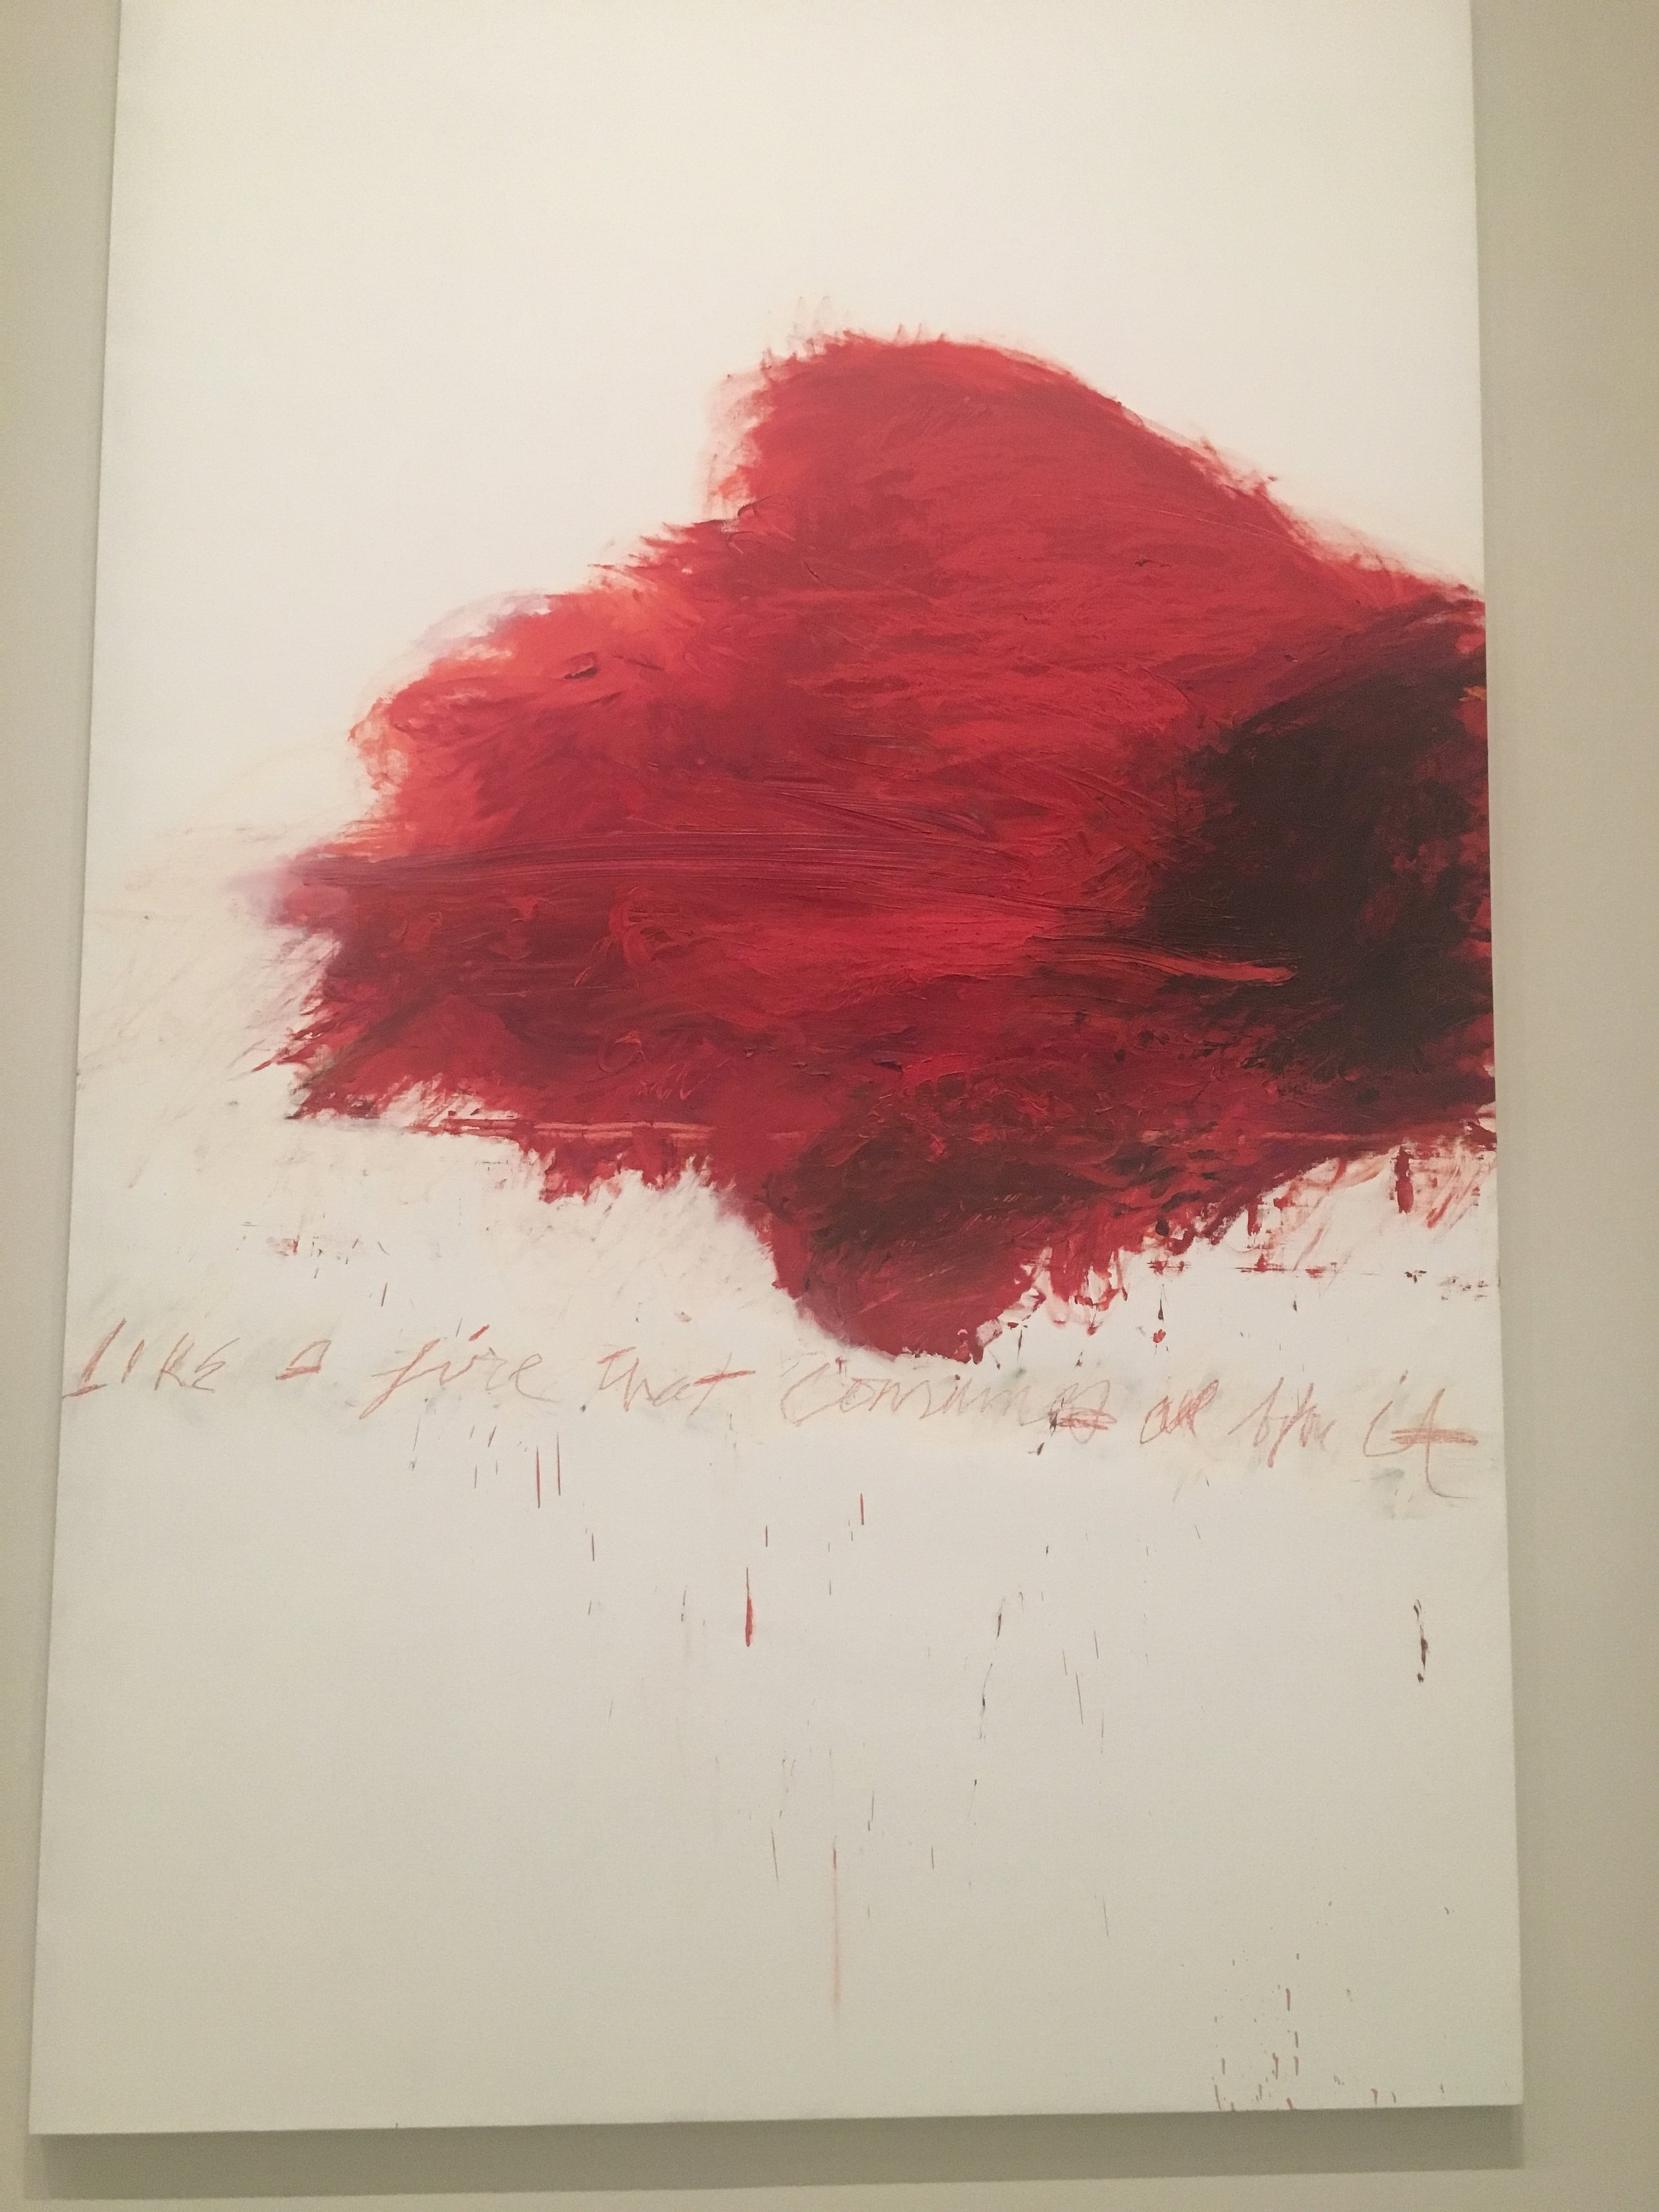 Cy Twombly - Like a Fire that consumes all before it. This one speaks to my rage. The artist was inspired by Homer the Iliad.